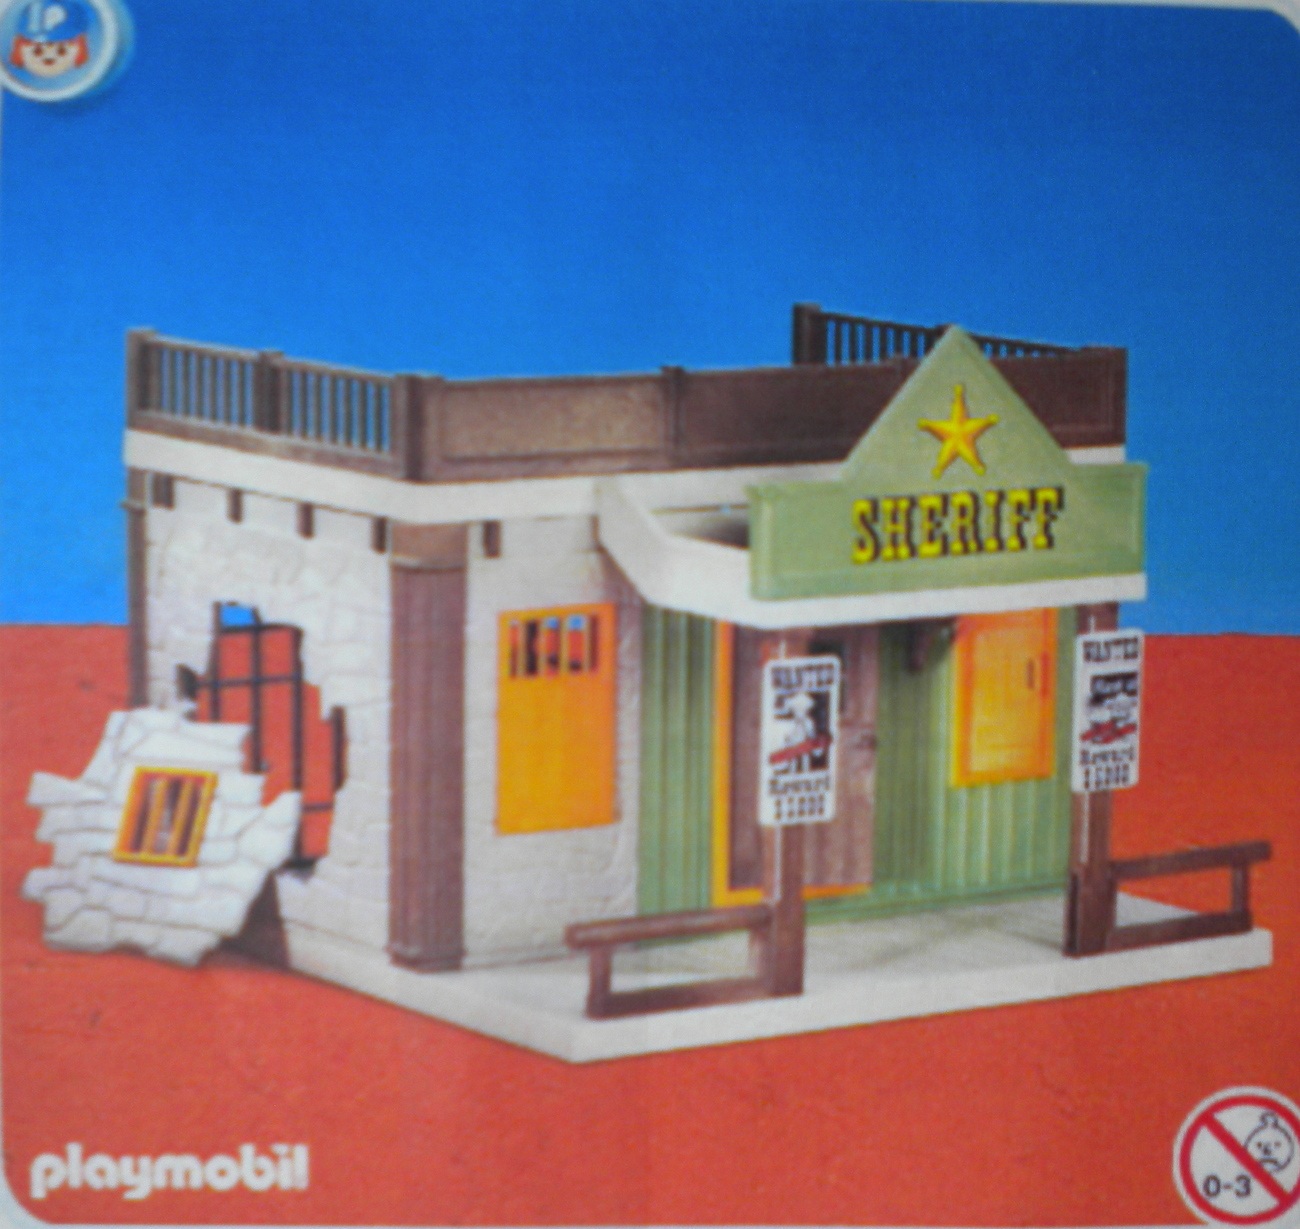 PLAYMOBIL SHERIFF'S OFFICE 7378 NEW IN BOX - $25.50